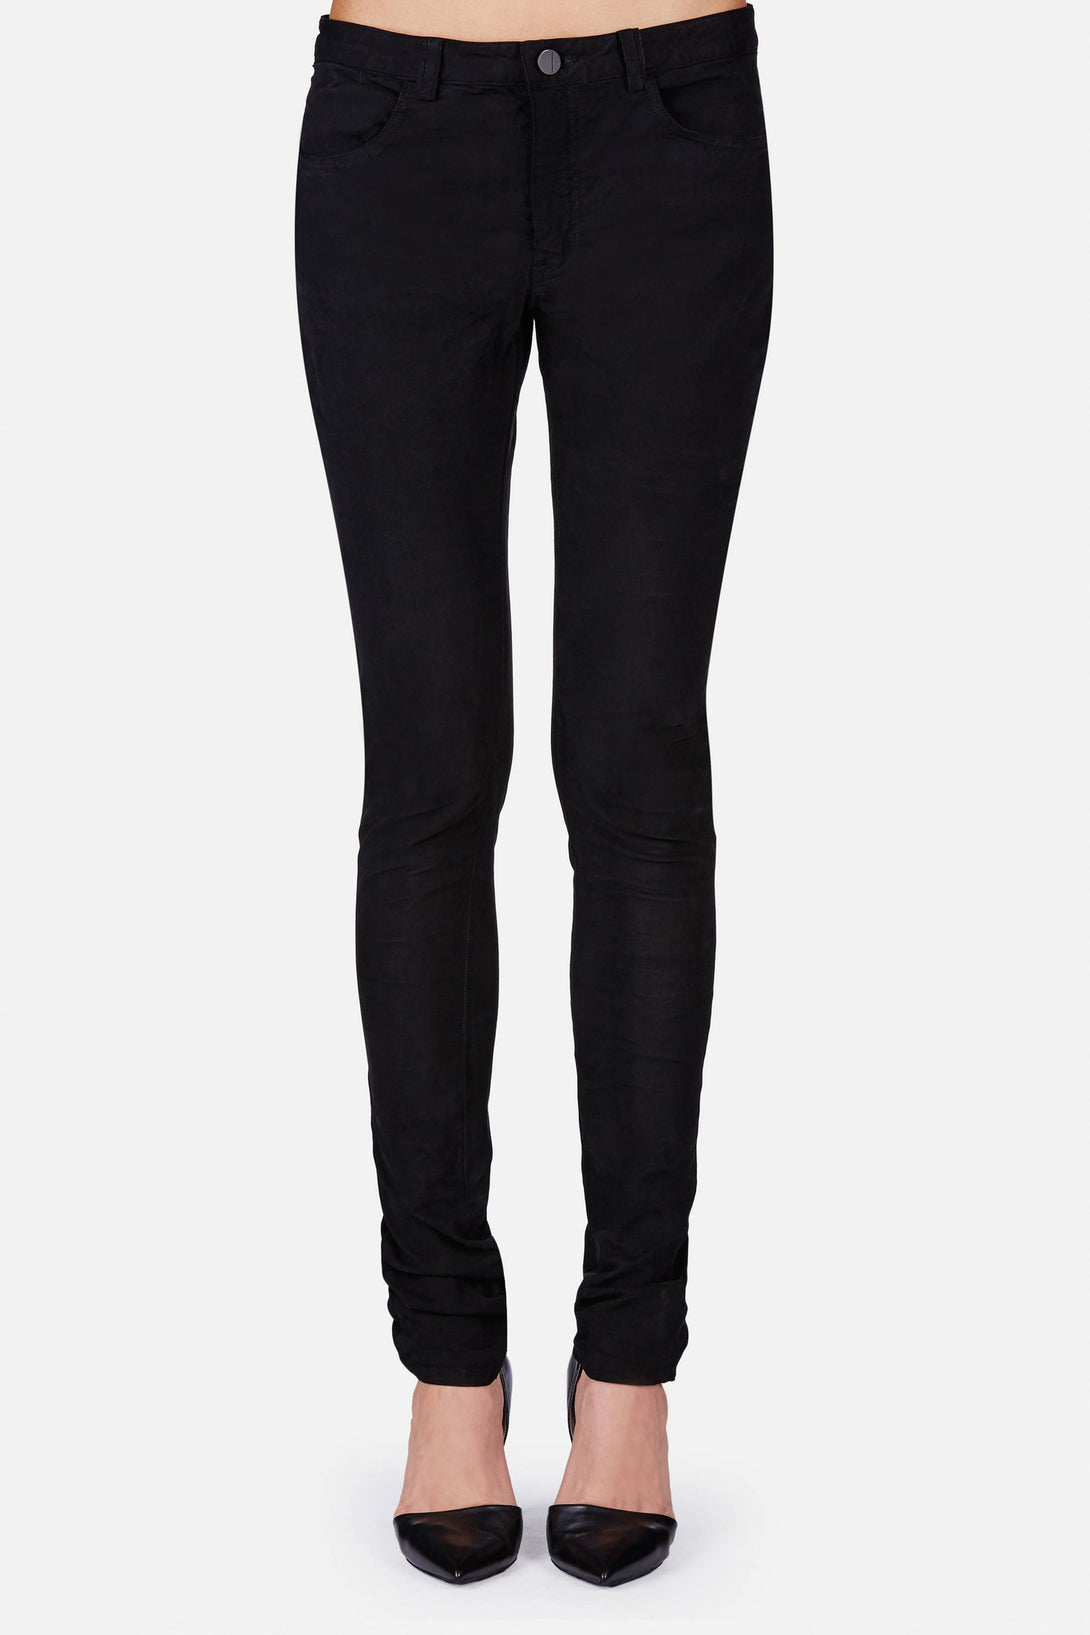 R.B. Skinny 5-Pocket Pant - Black